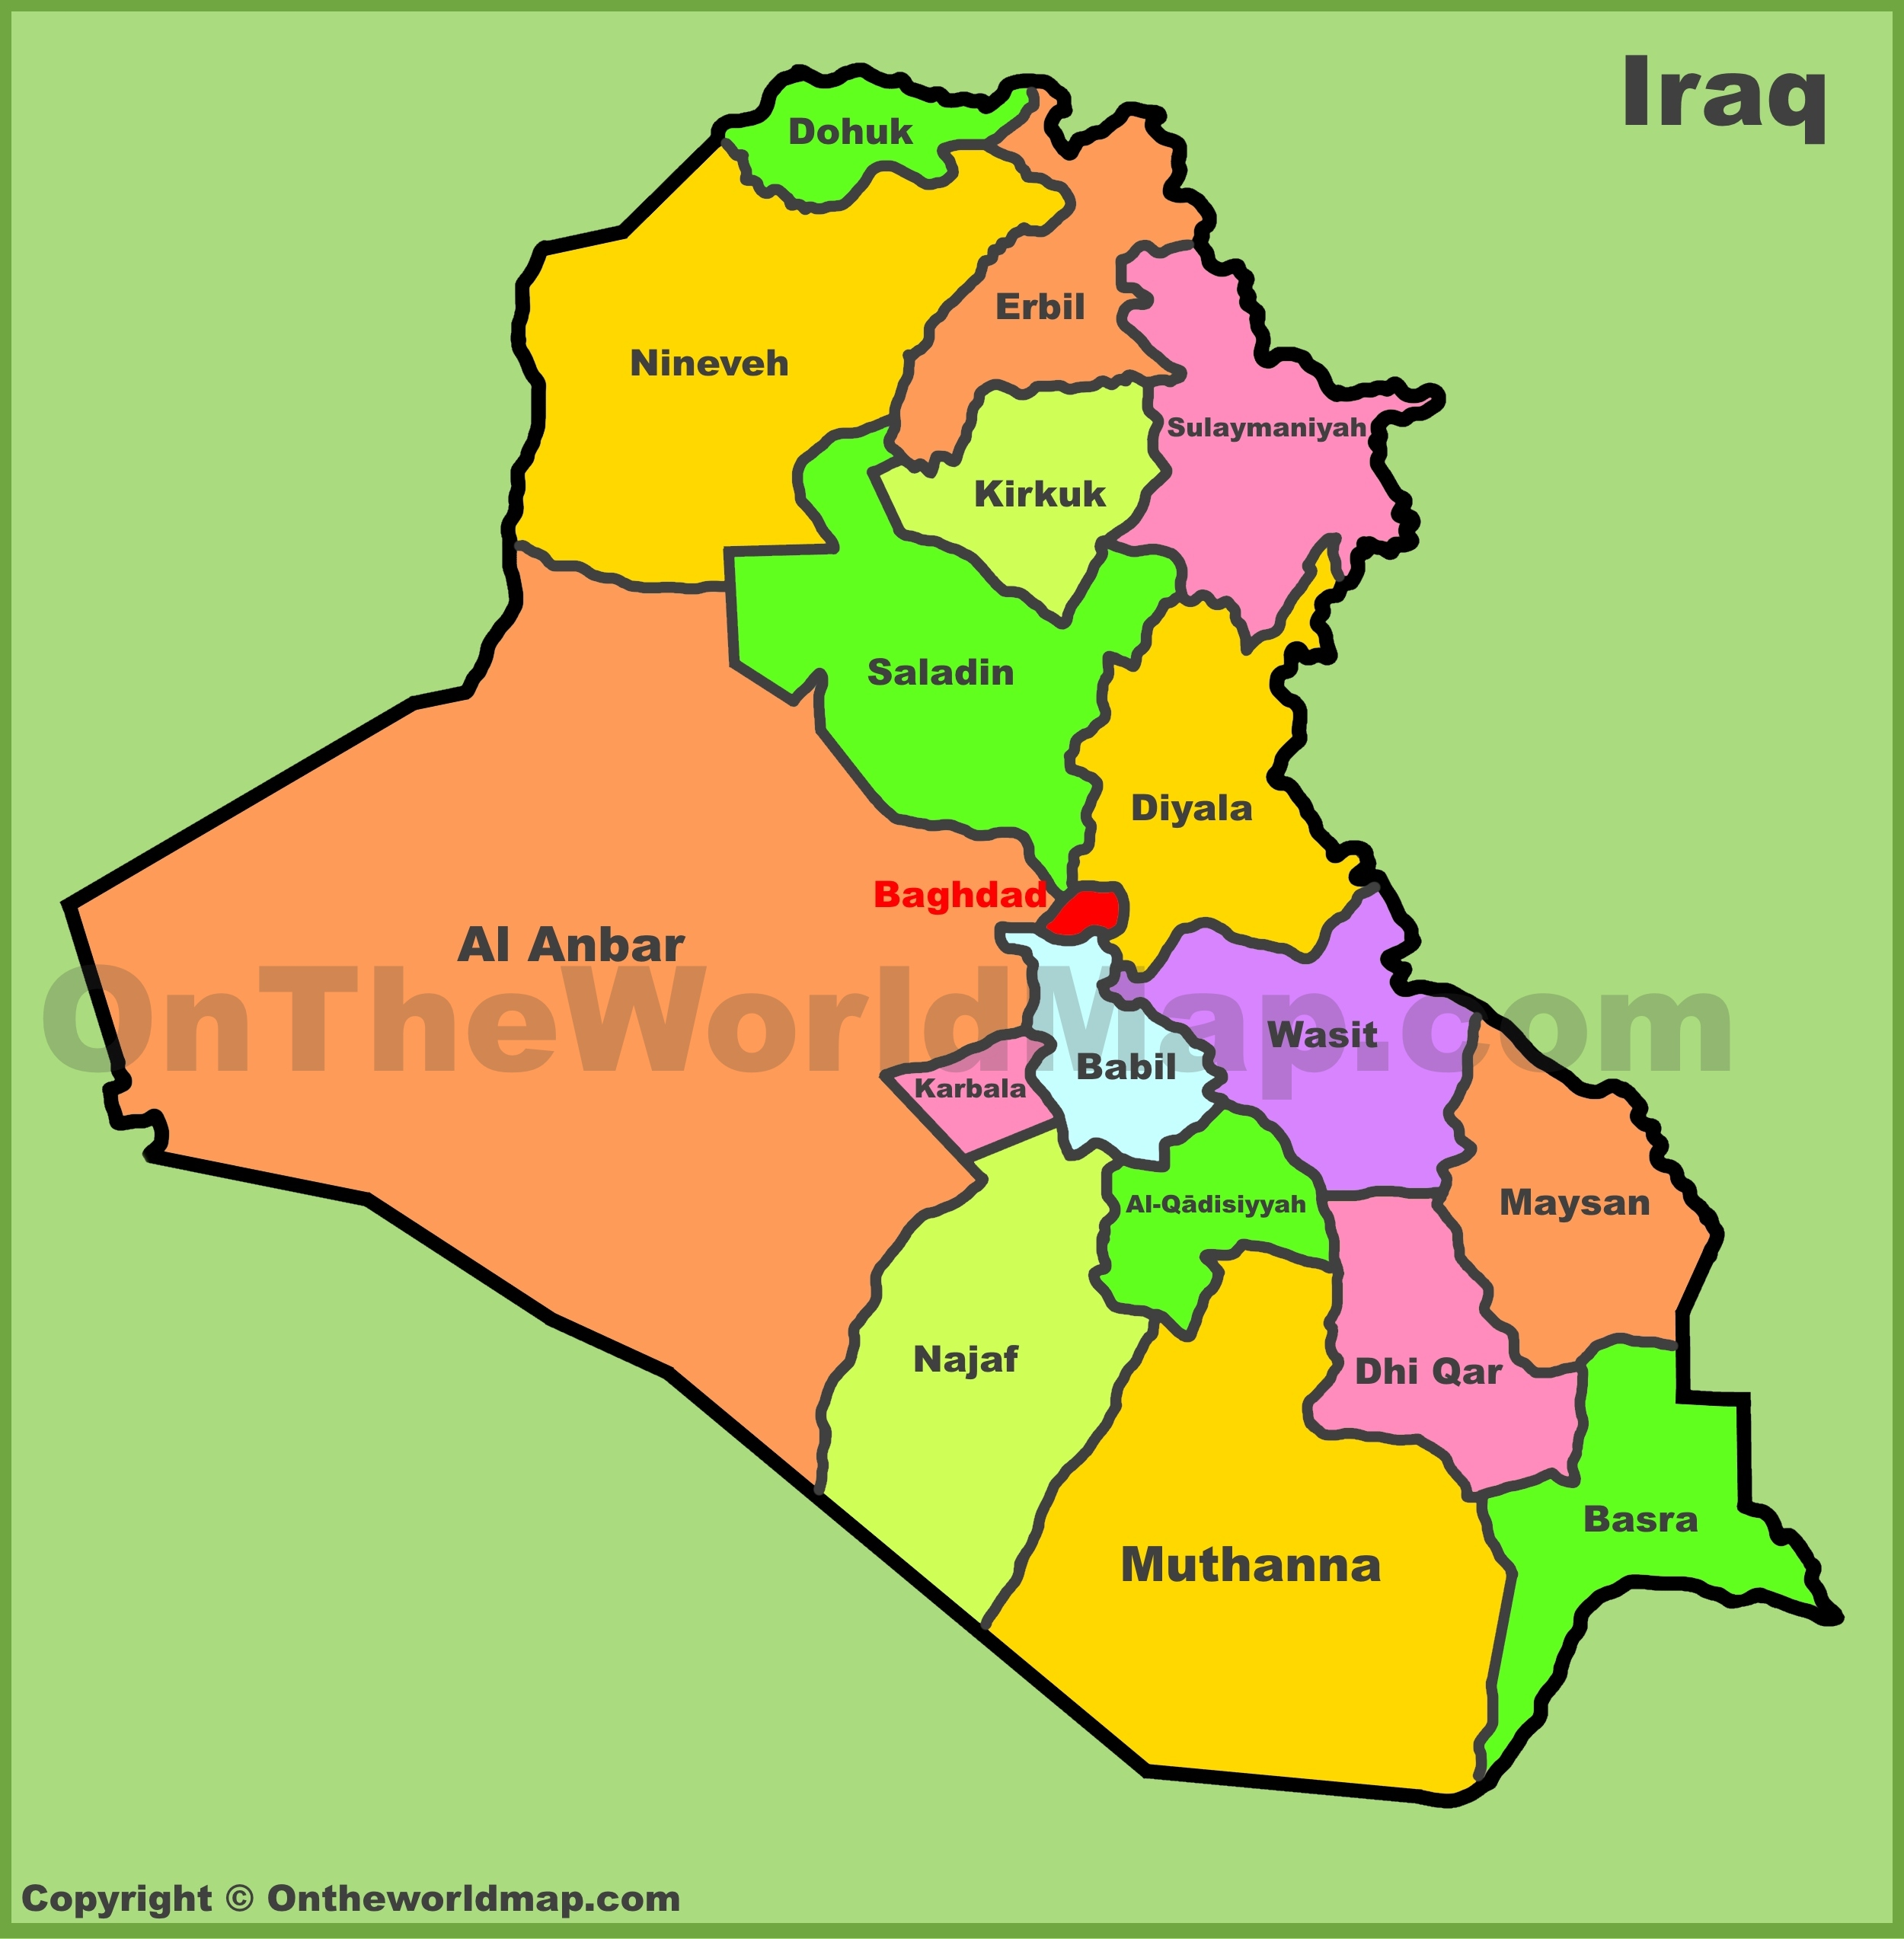 a geography of iraq Formerly part of the ottoman empire, iraq was occupied by britain during the course of world war i in 1920, it was declared a league of nations mandate under uk administration in stages over the next dozen years, iraq attained its independence as a kingdom in 1932 a.